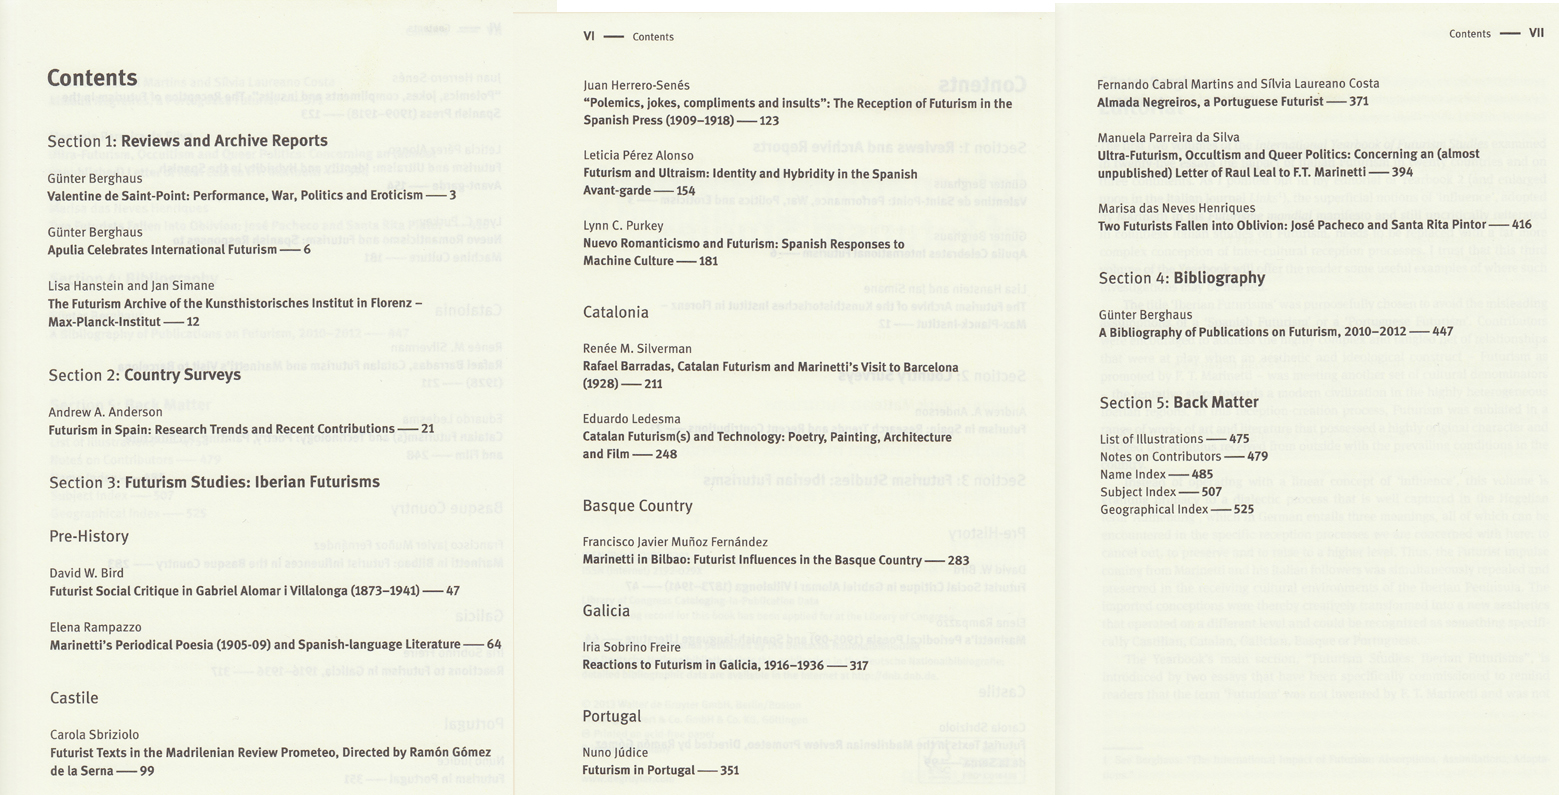 2013 Yearbook Table of Contents